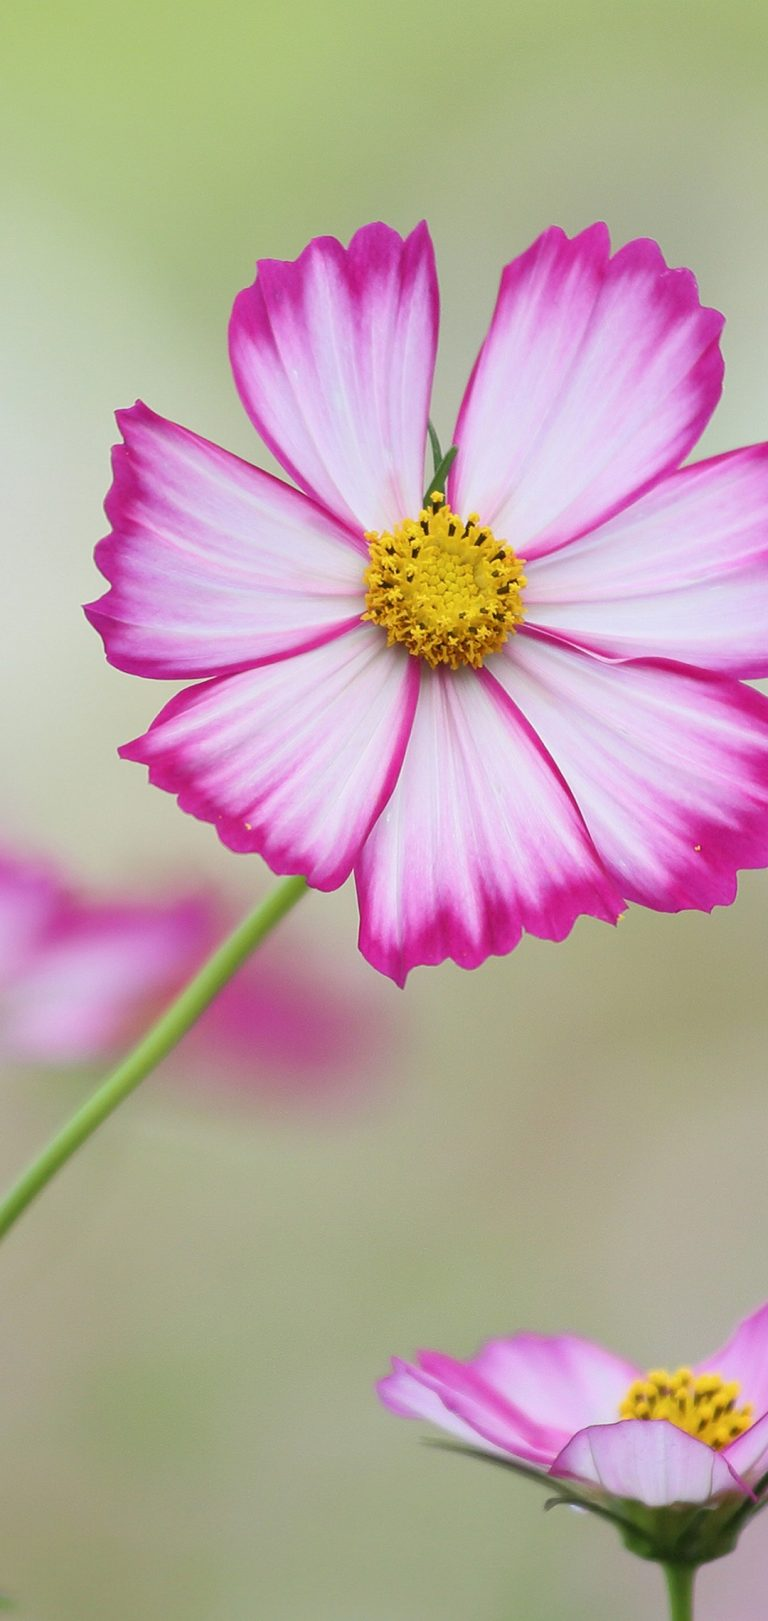 Cosmos Wallpaper 1080x2280 768x1621